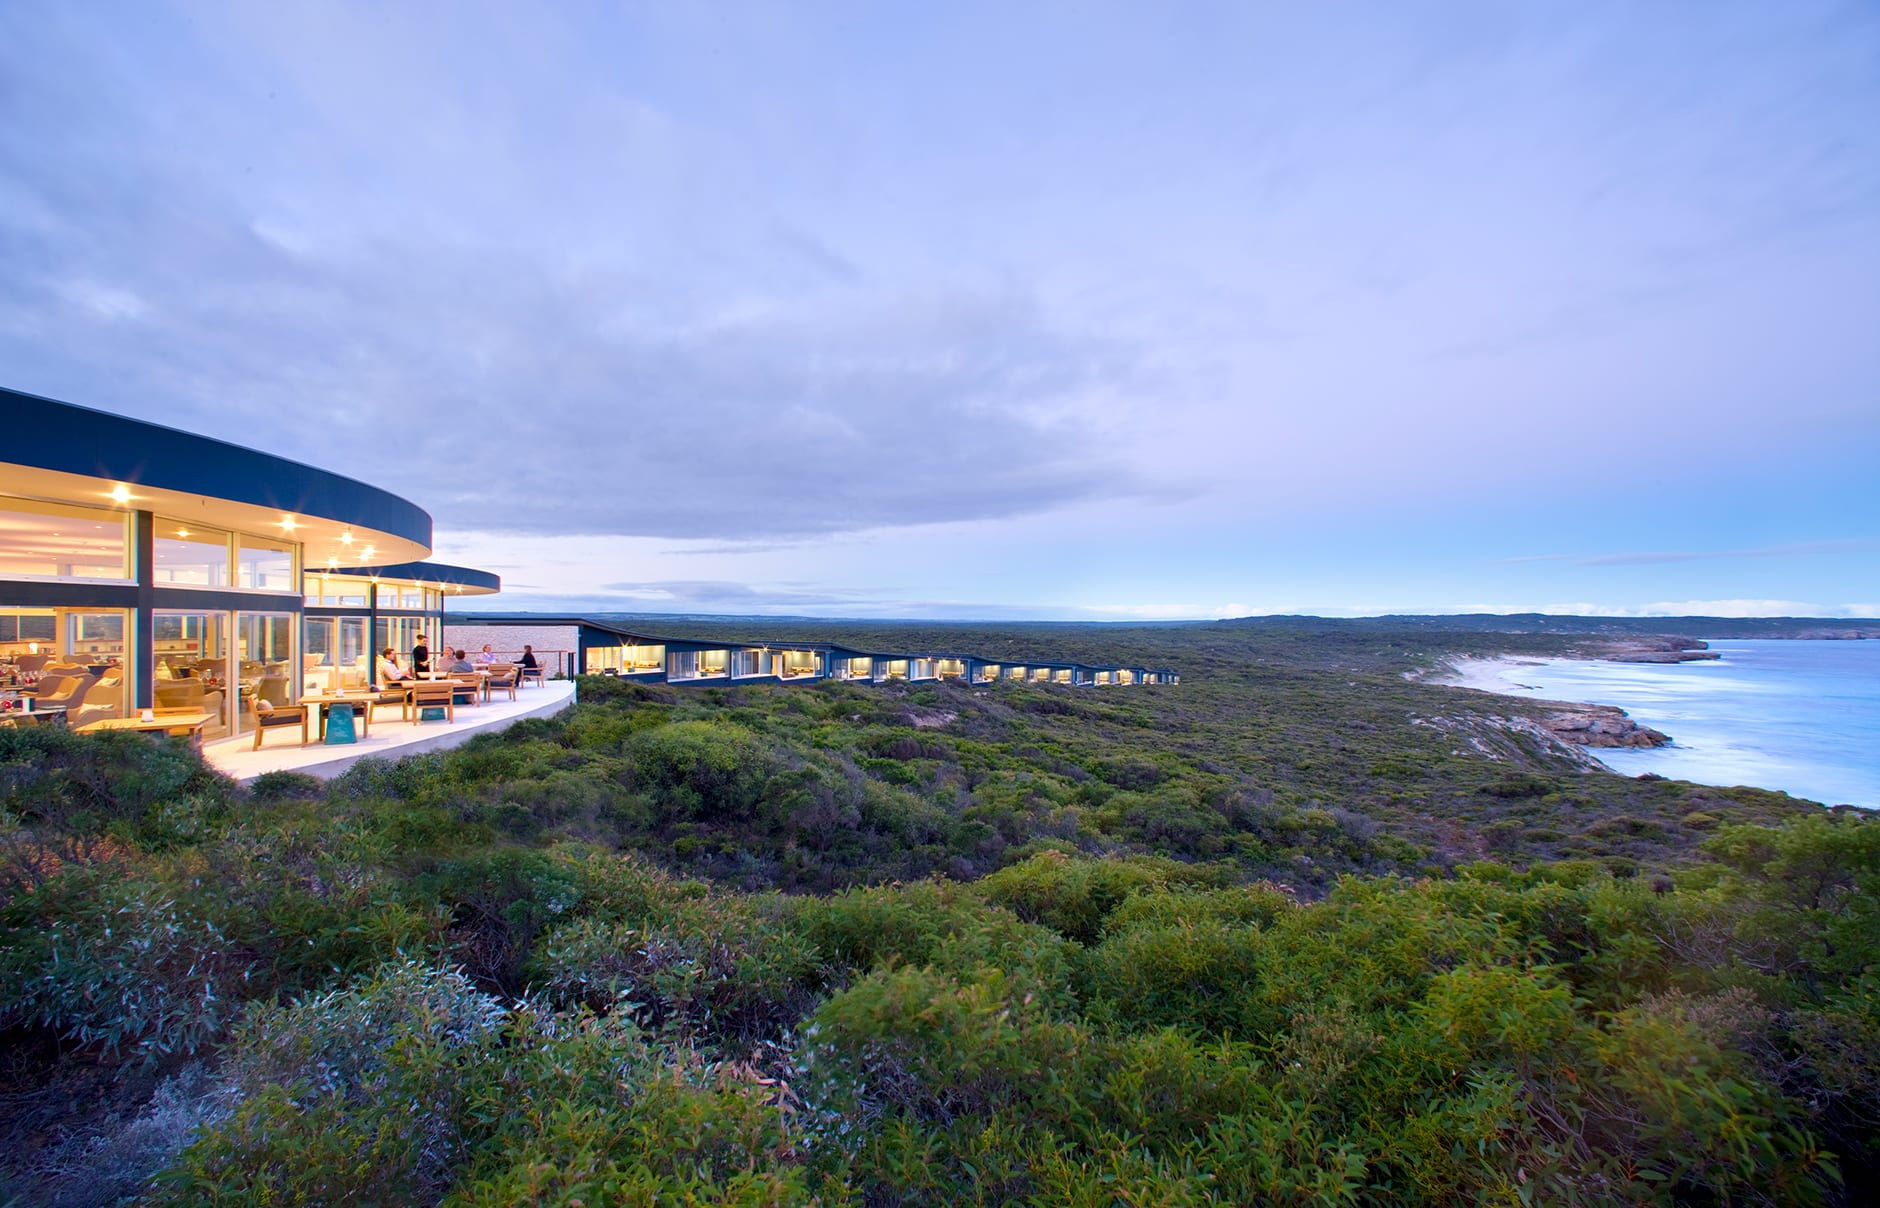 Lodge Sunset. Southern Ocean Lodge, Kangaroo Island, Australia. © Luxury Lodges of Australia